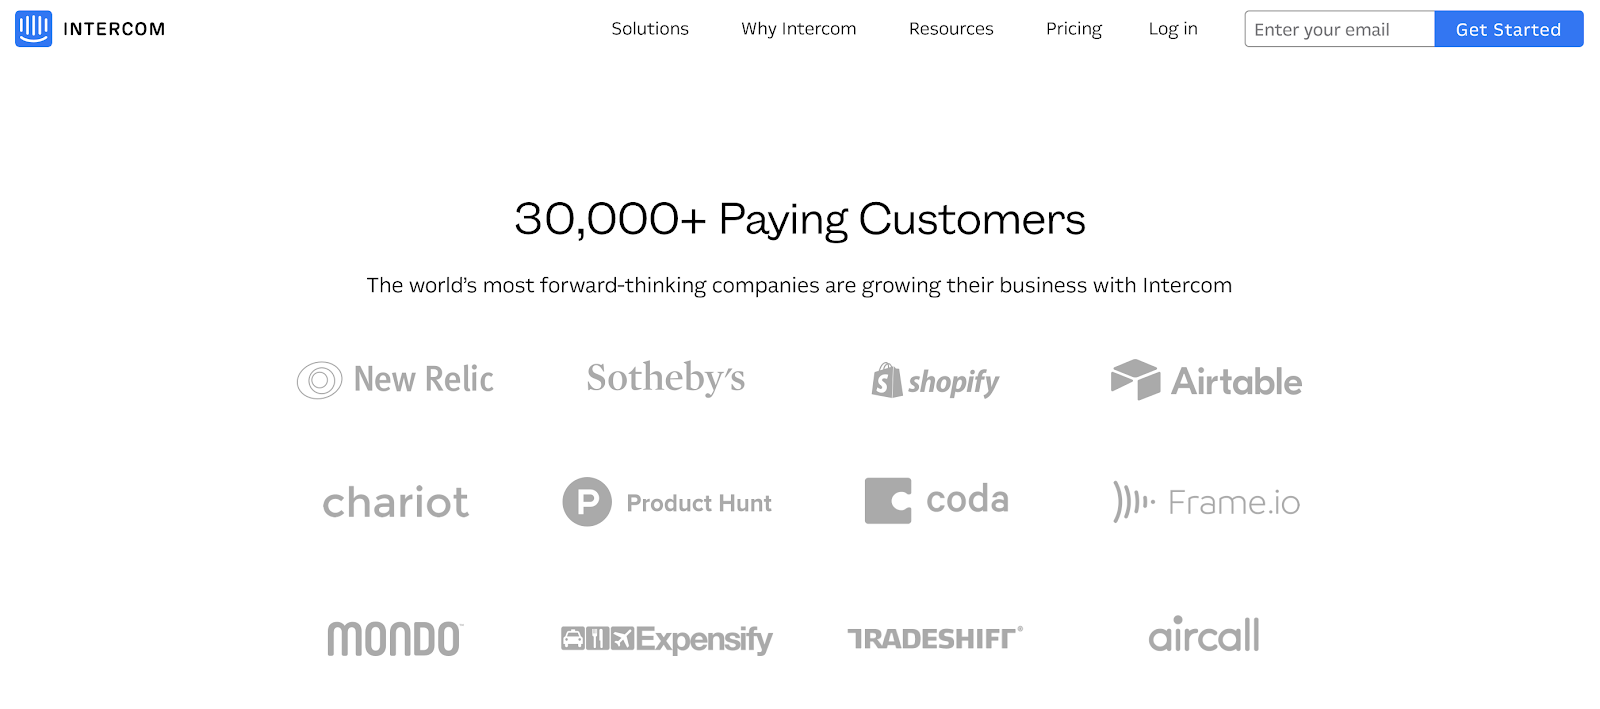 intercom homepage showing 30000 customers.